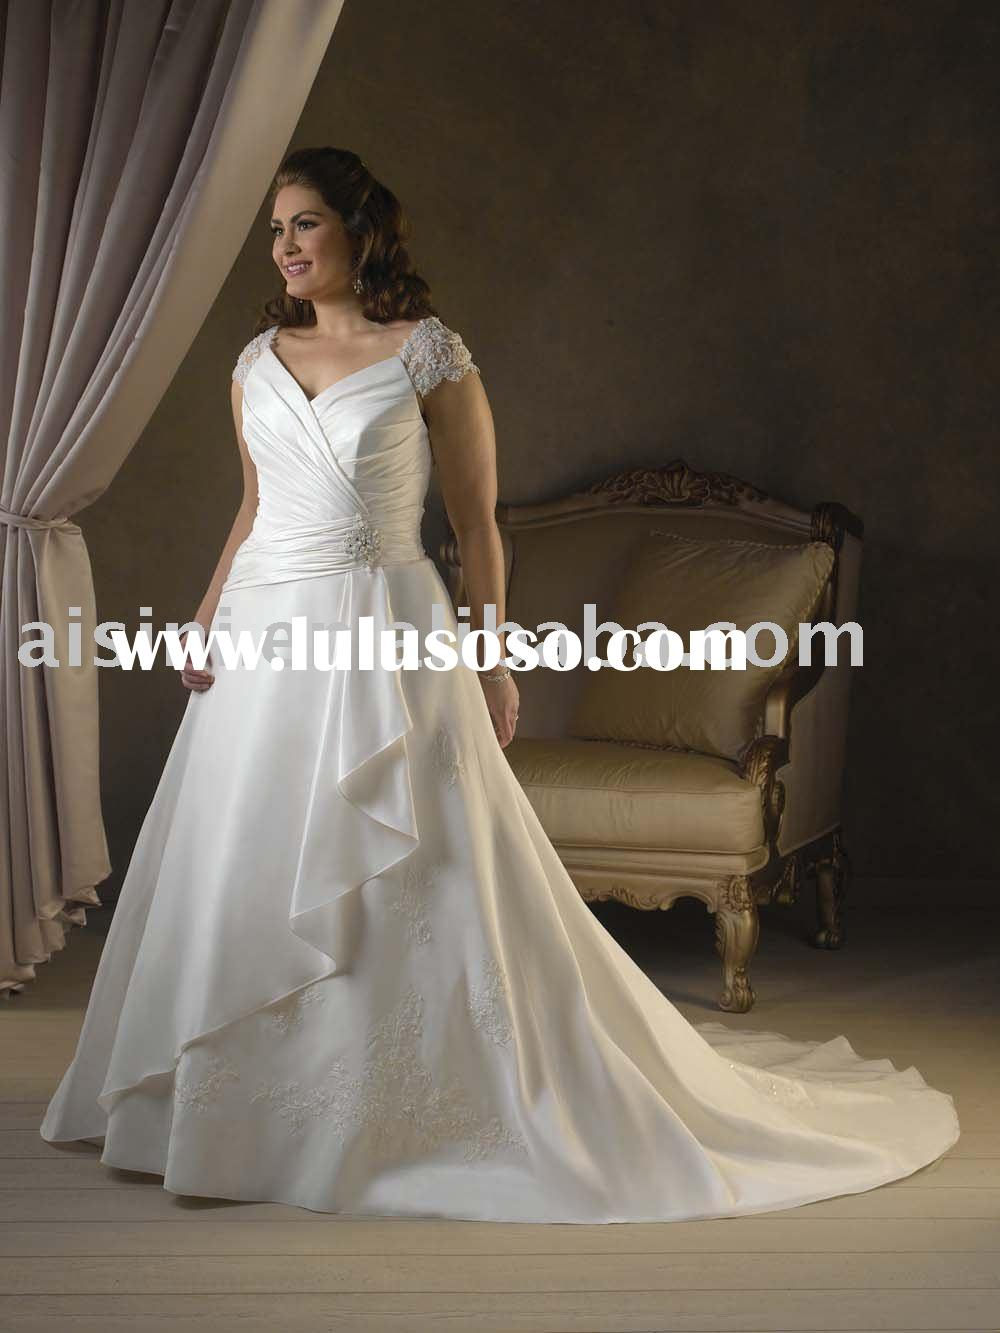 Bonny Bridal, Style 1017 wedding dress, Unforgetable Plus Size A-line Taffeta wedding gowns